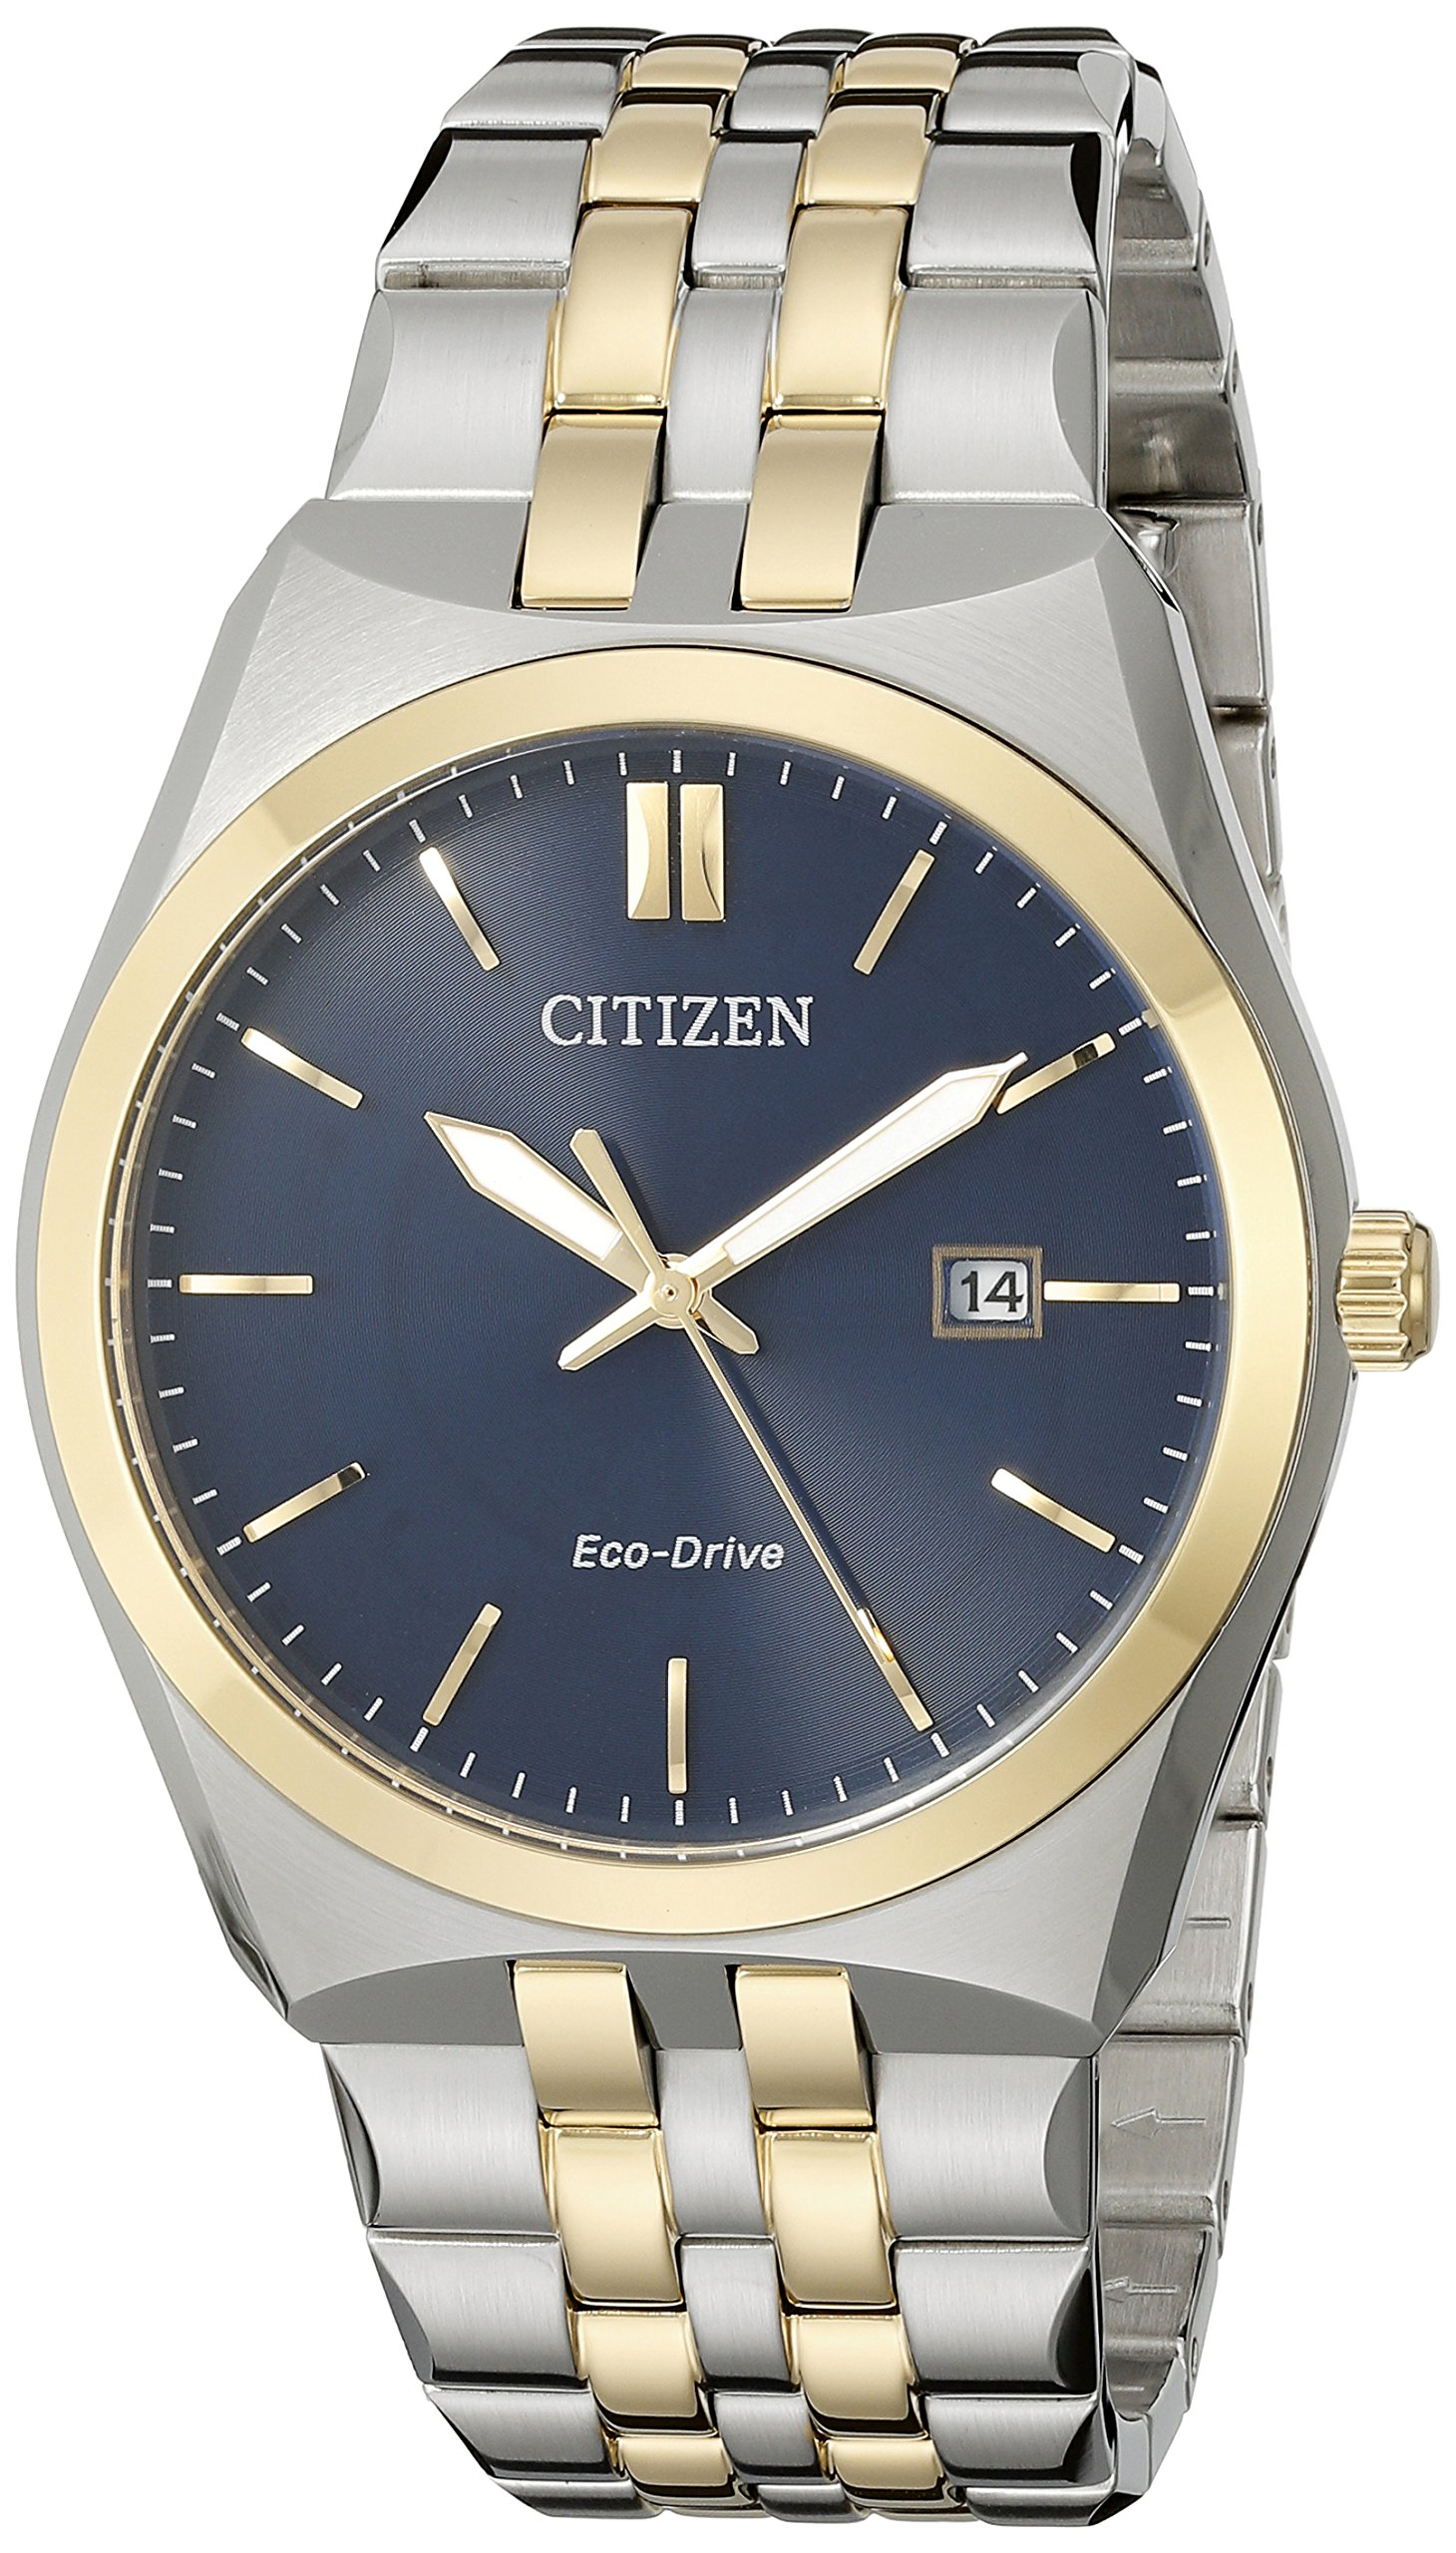 Citizen Men's Eco-Drive Stainless Steel Watch with Date, BM7334-58L